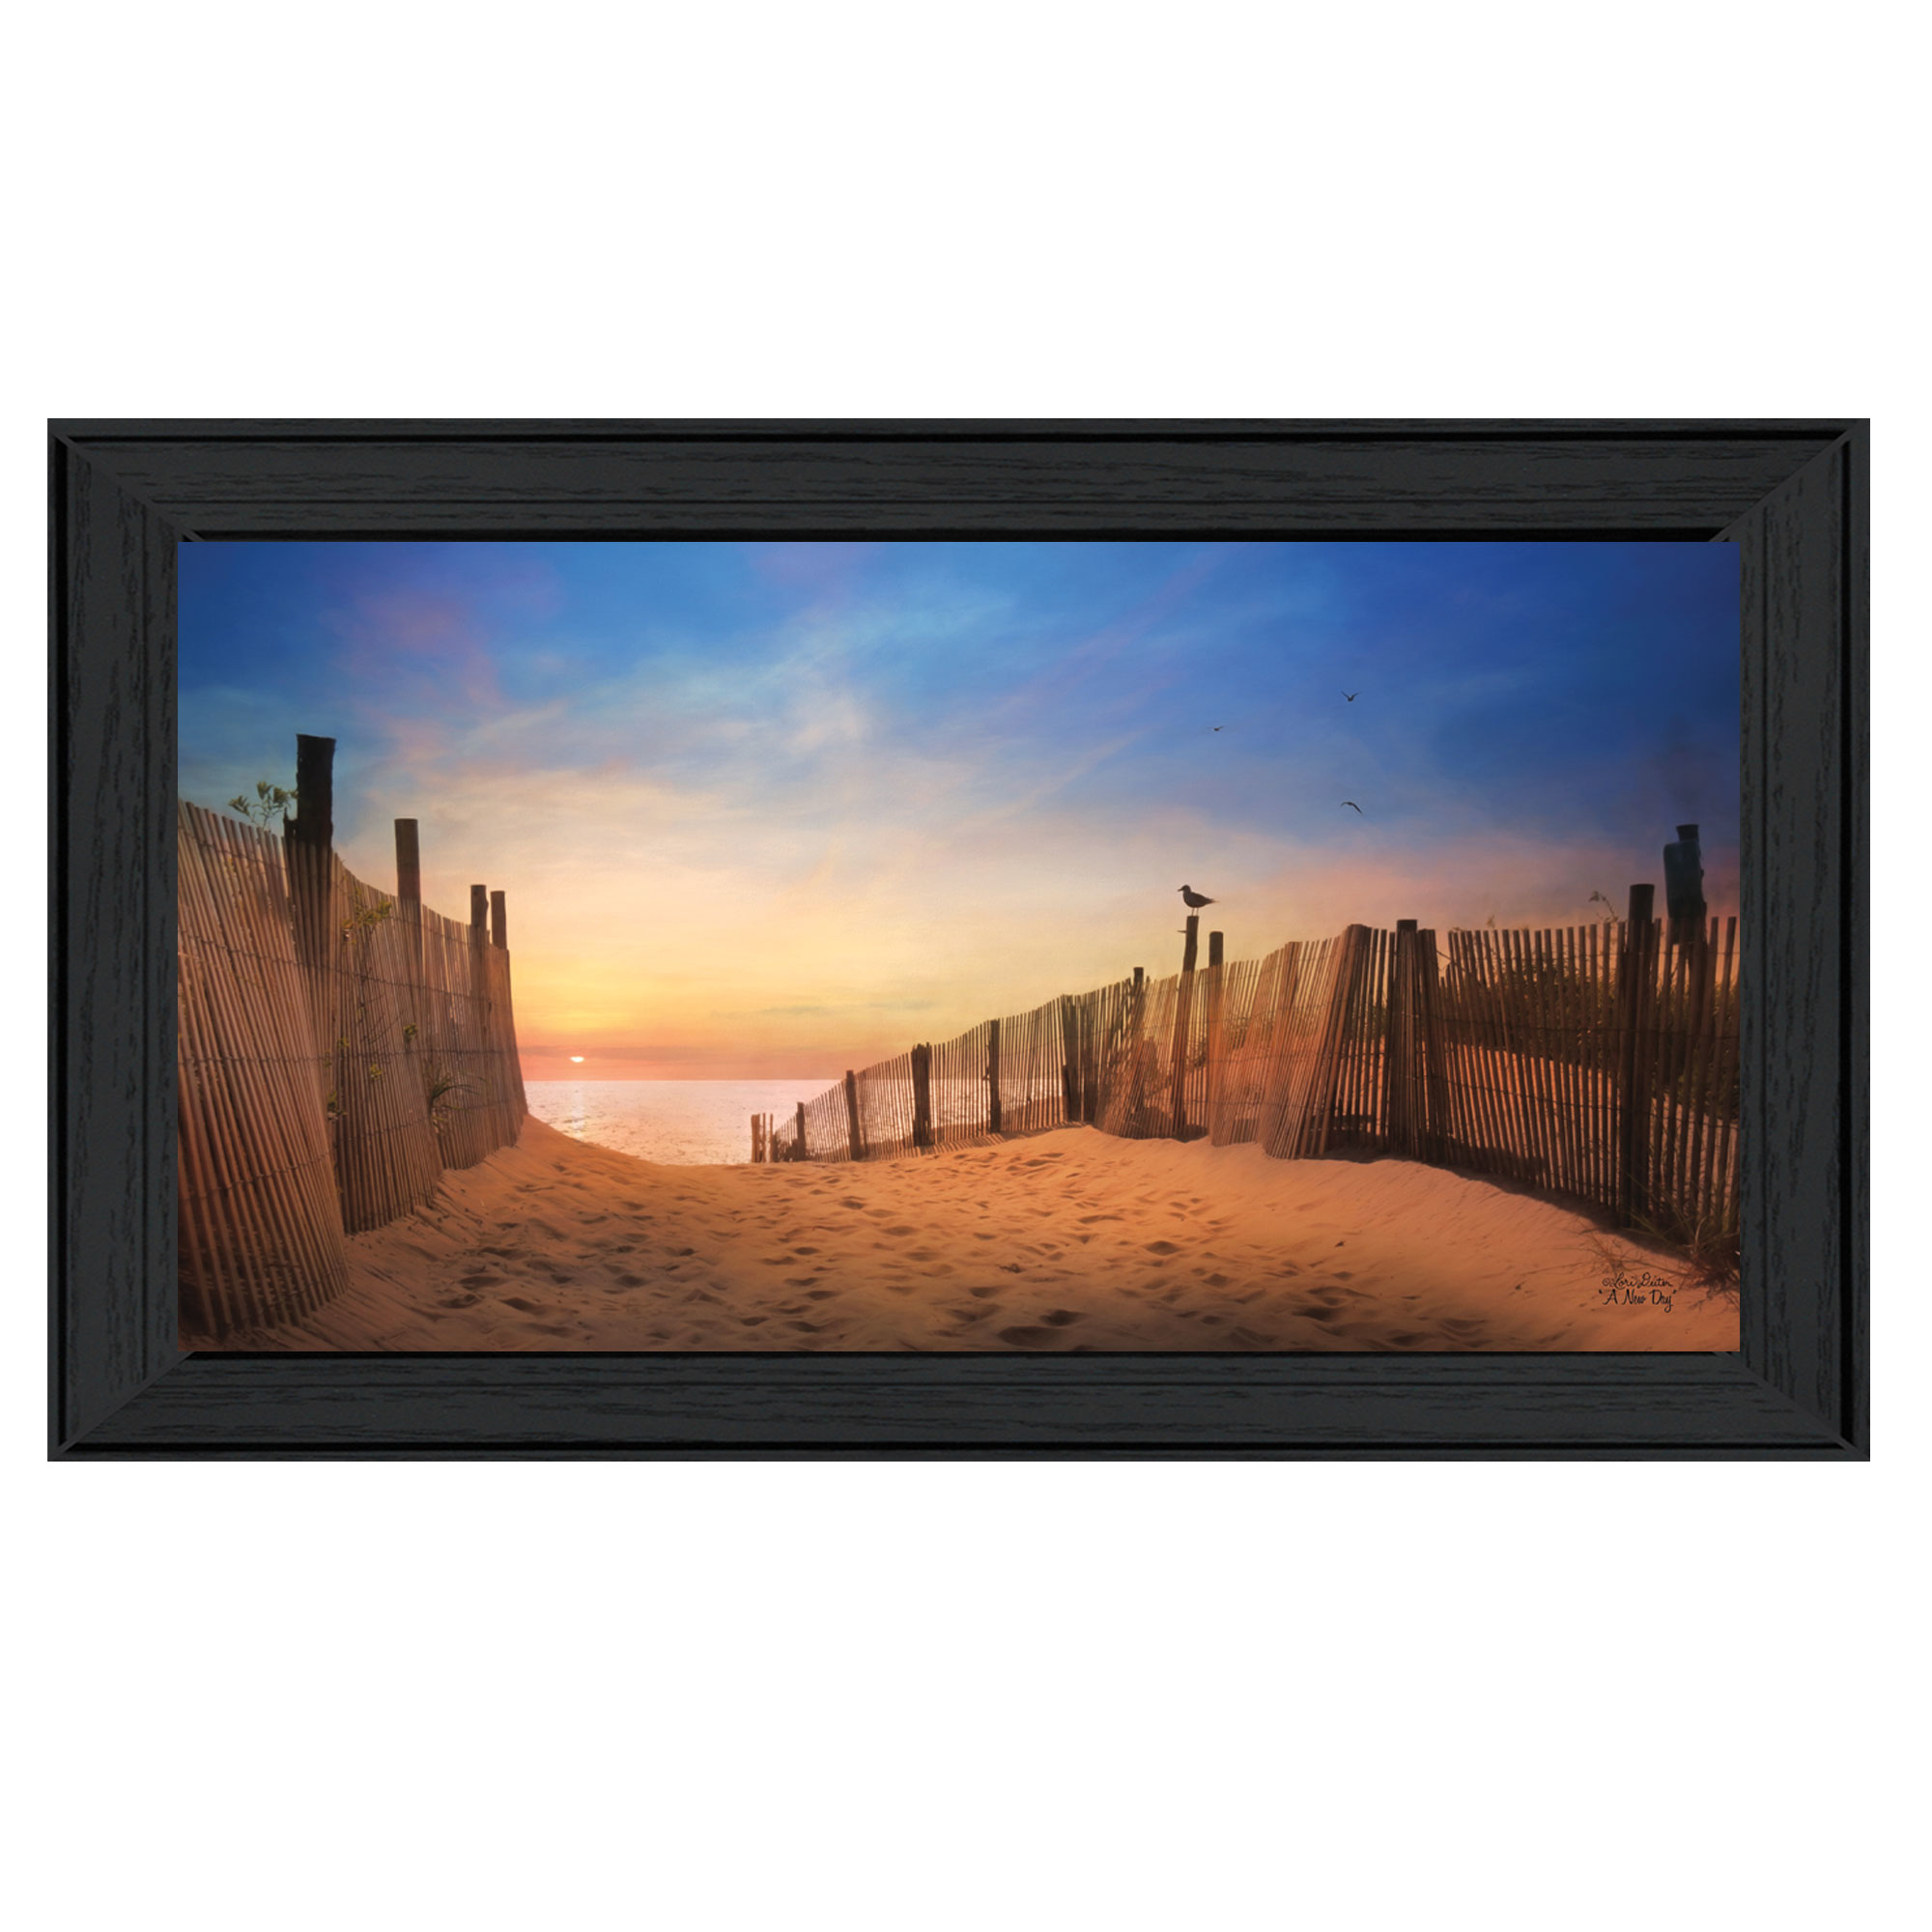 "Ld648-405 ""A New Day"" is a 20"" x 11"" framed art print in a decorative black frame of the art of Lori Deiter. The art shows a beautiful morning at the beach. The print has a protective, archival finish (glass is not needed) and arrives ready to hang. Made in the USA with pride by skilled American workers. * Made in the USA * Women Owned (Wbe) * Textured Artwork with a 'rolled on' acid free acrylic coating to create a canvas painting effect. No glass is necessary. * UV protectant coating protects artwork from fading. * Arrives Ready to Hang"